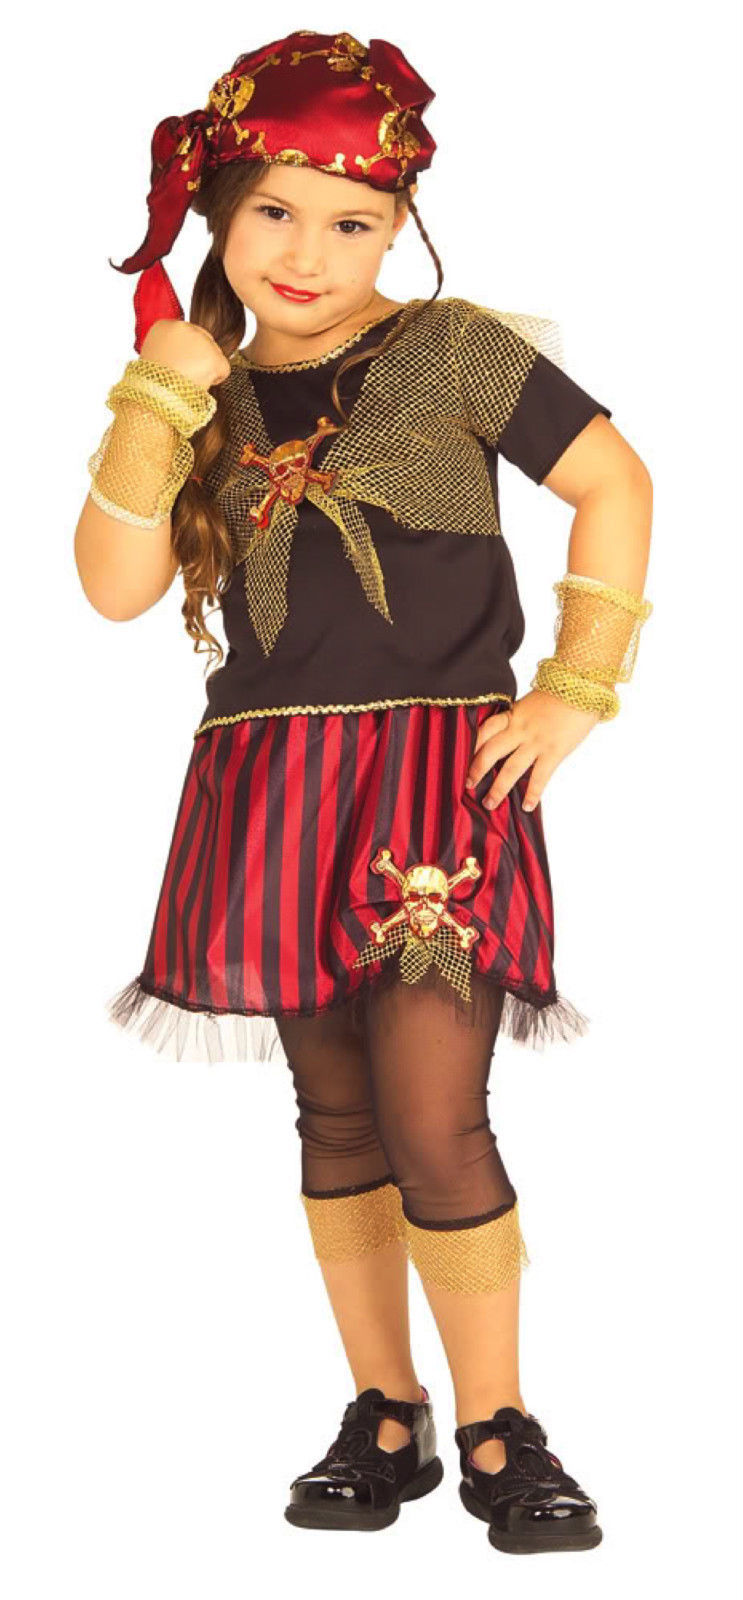 Image 2 of Precious Pirate Princess of the Sea Girls Complete Sassy Costume by Rubies - Red